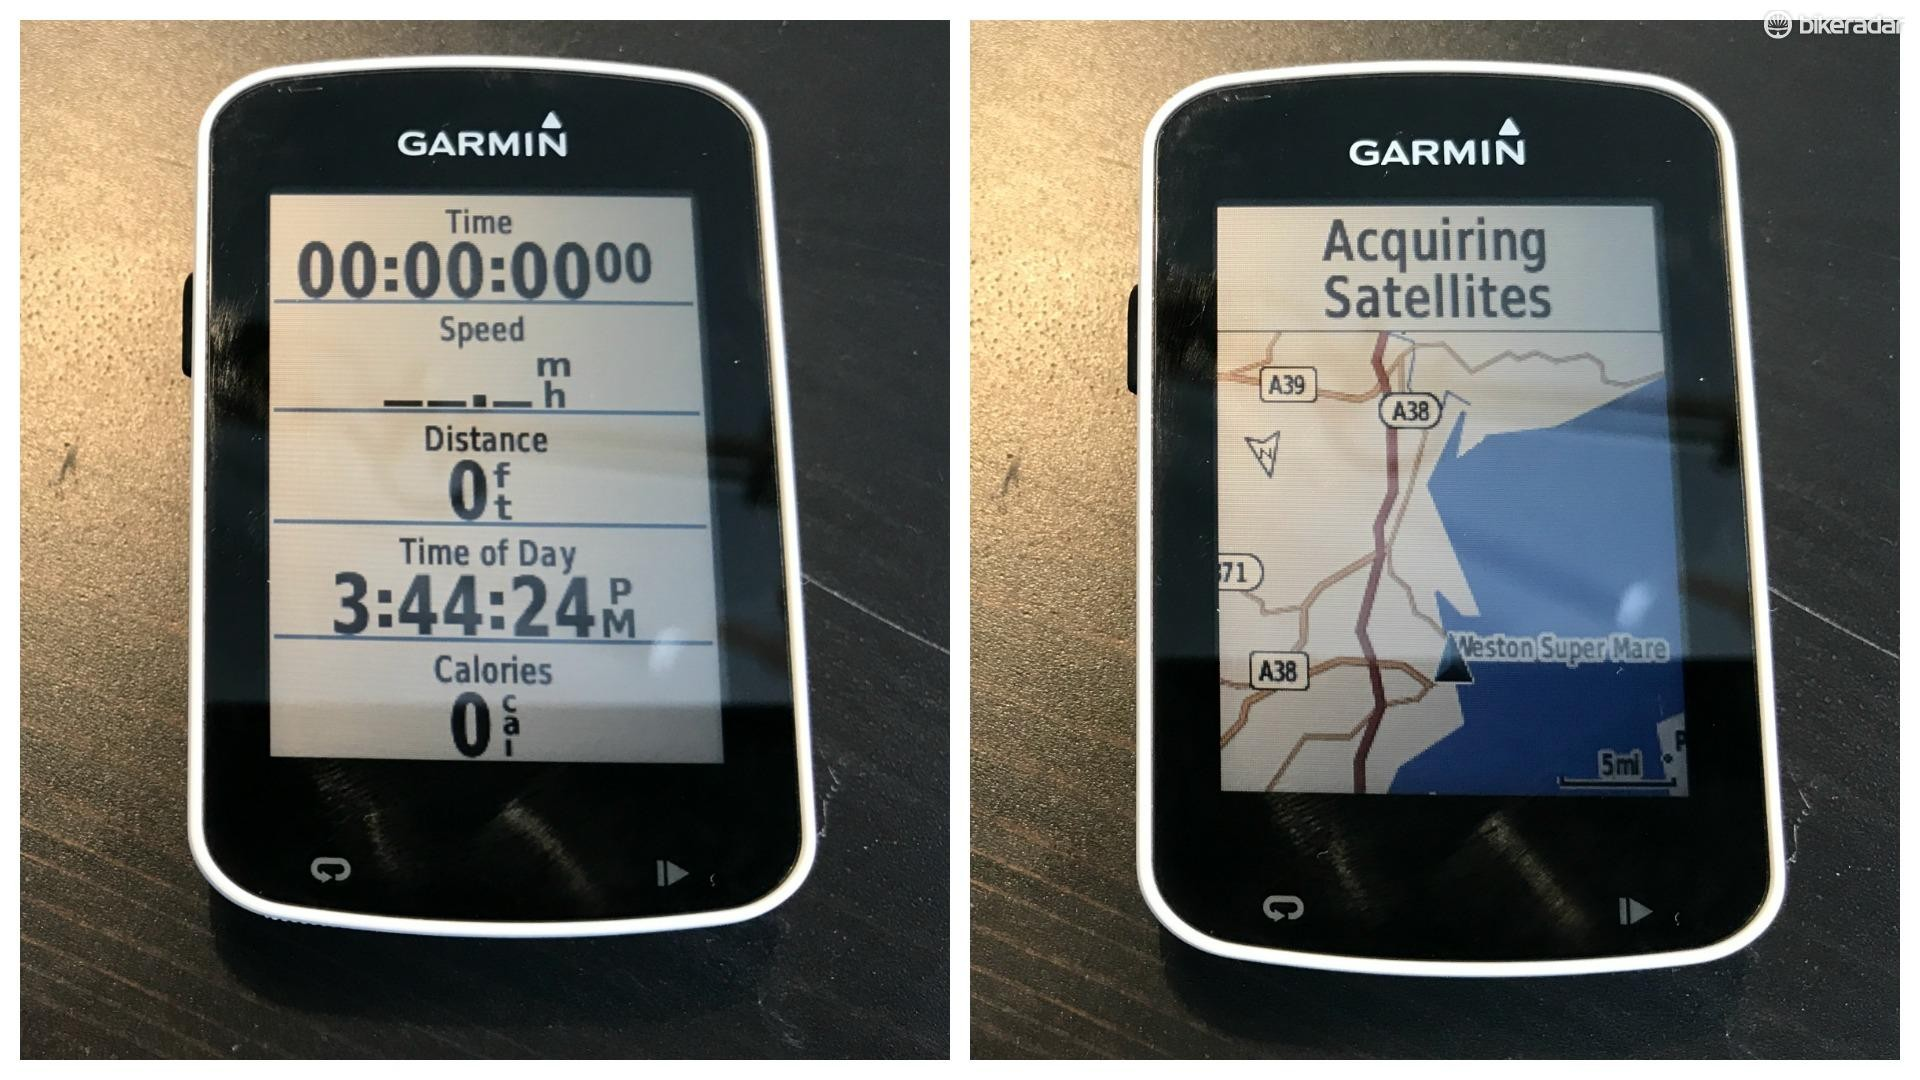 You can swipe through a selection of screens while riding, with displays showing ride stats and metrics, or a map view